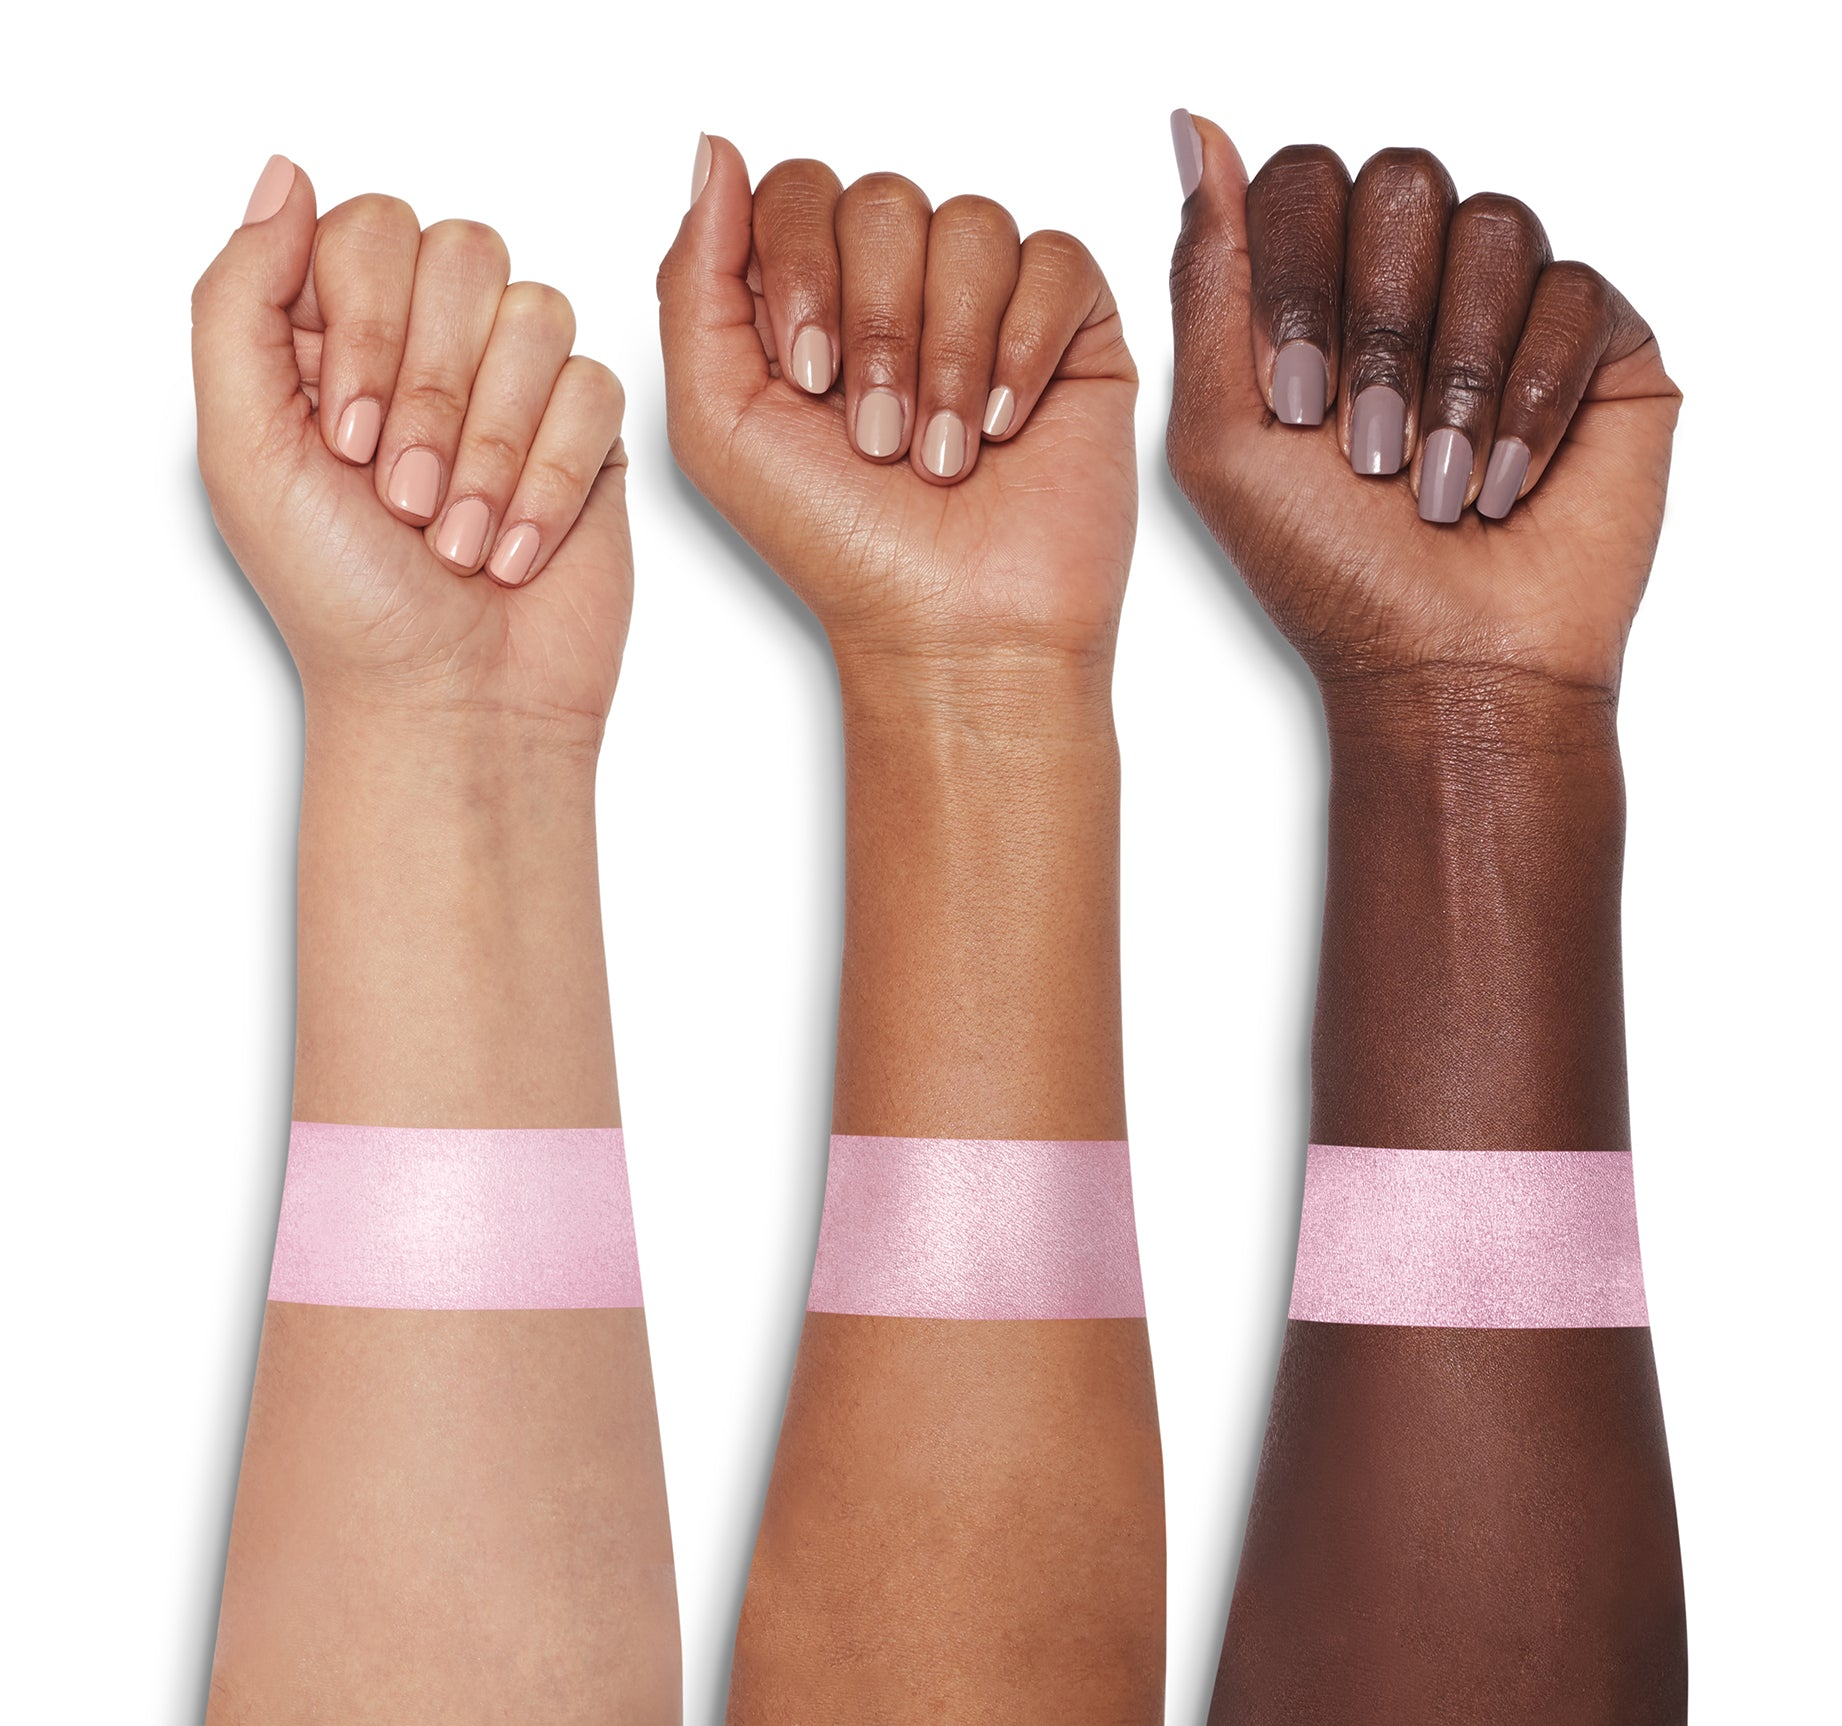 MORPHE X DEYSI DANGER HIGHLIGHTER ARM SWATCHES, view larger image